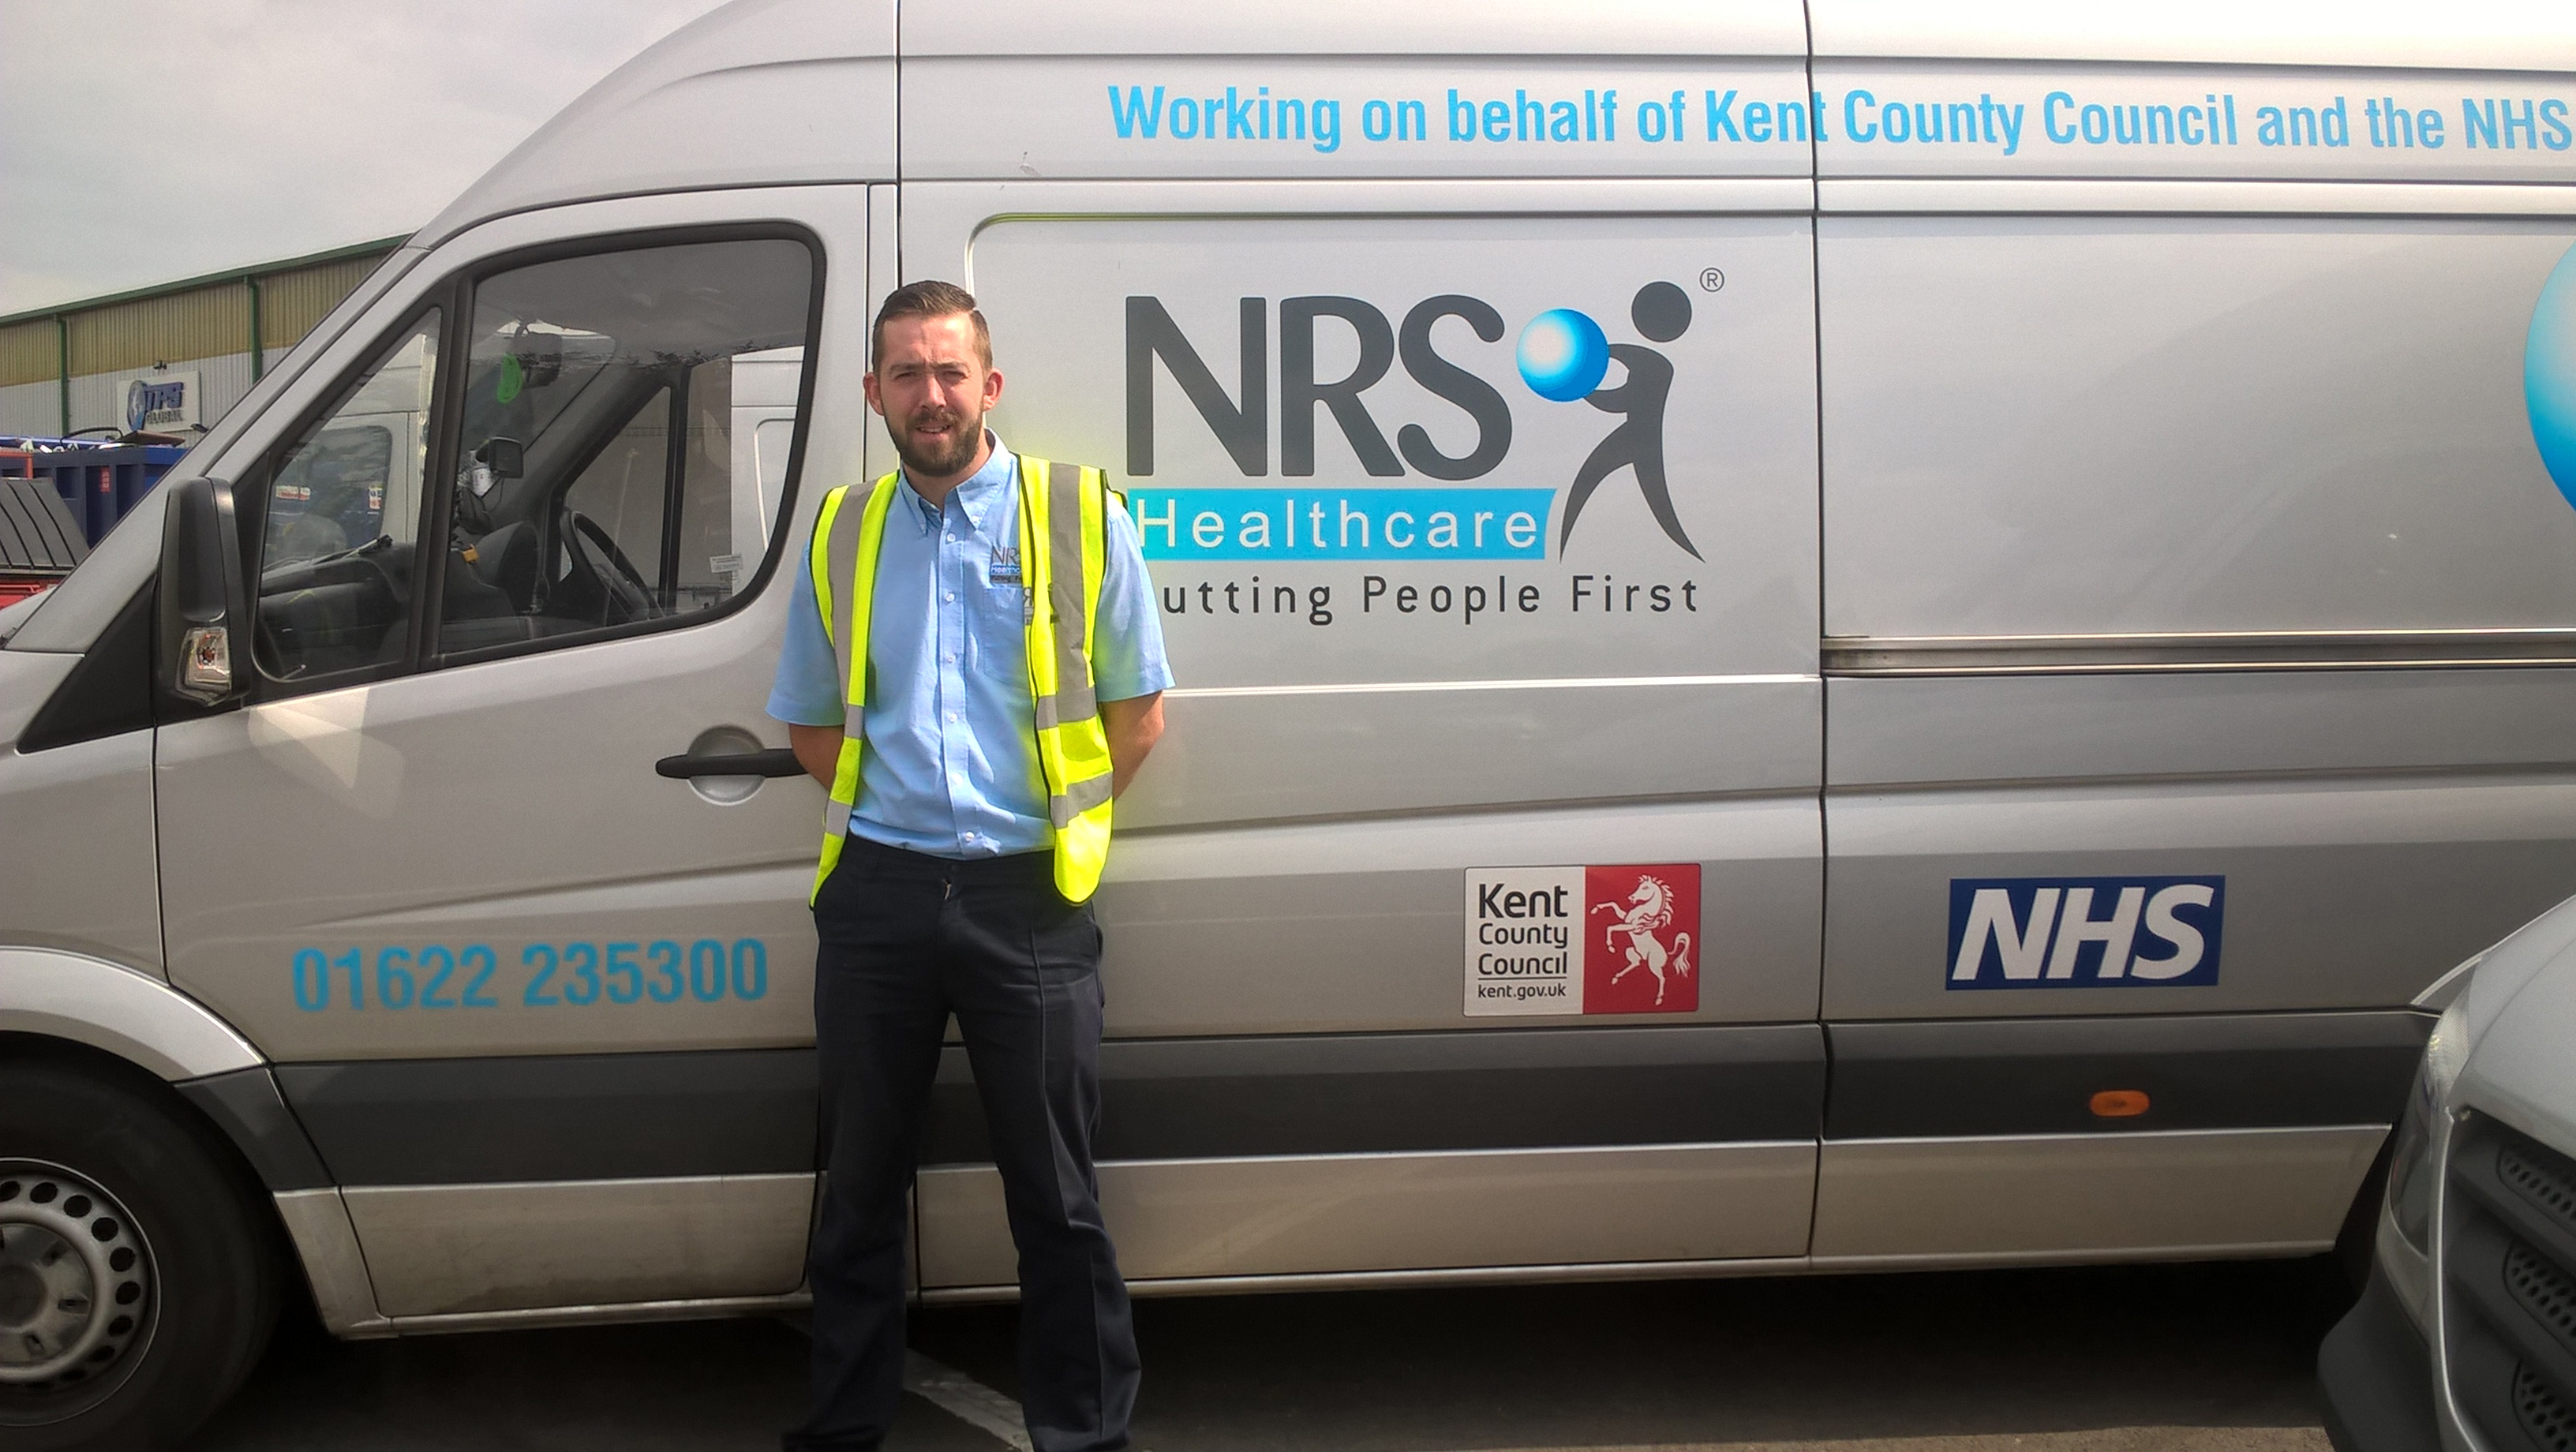 Liam Richards NRS Healthcare